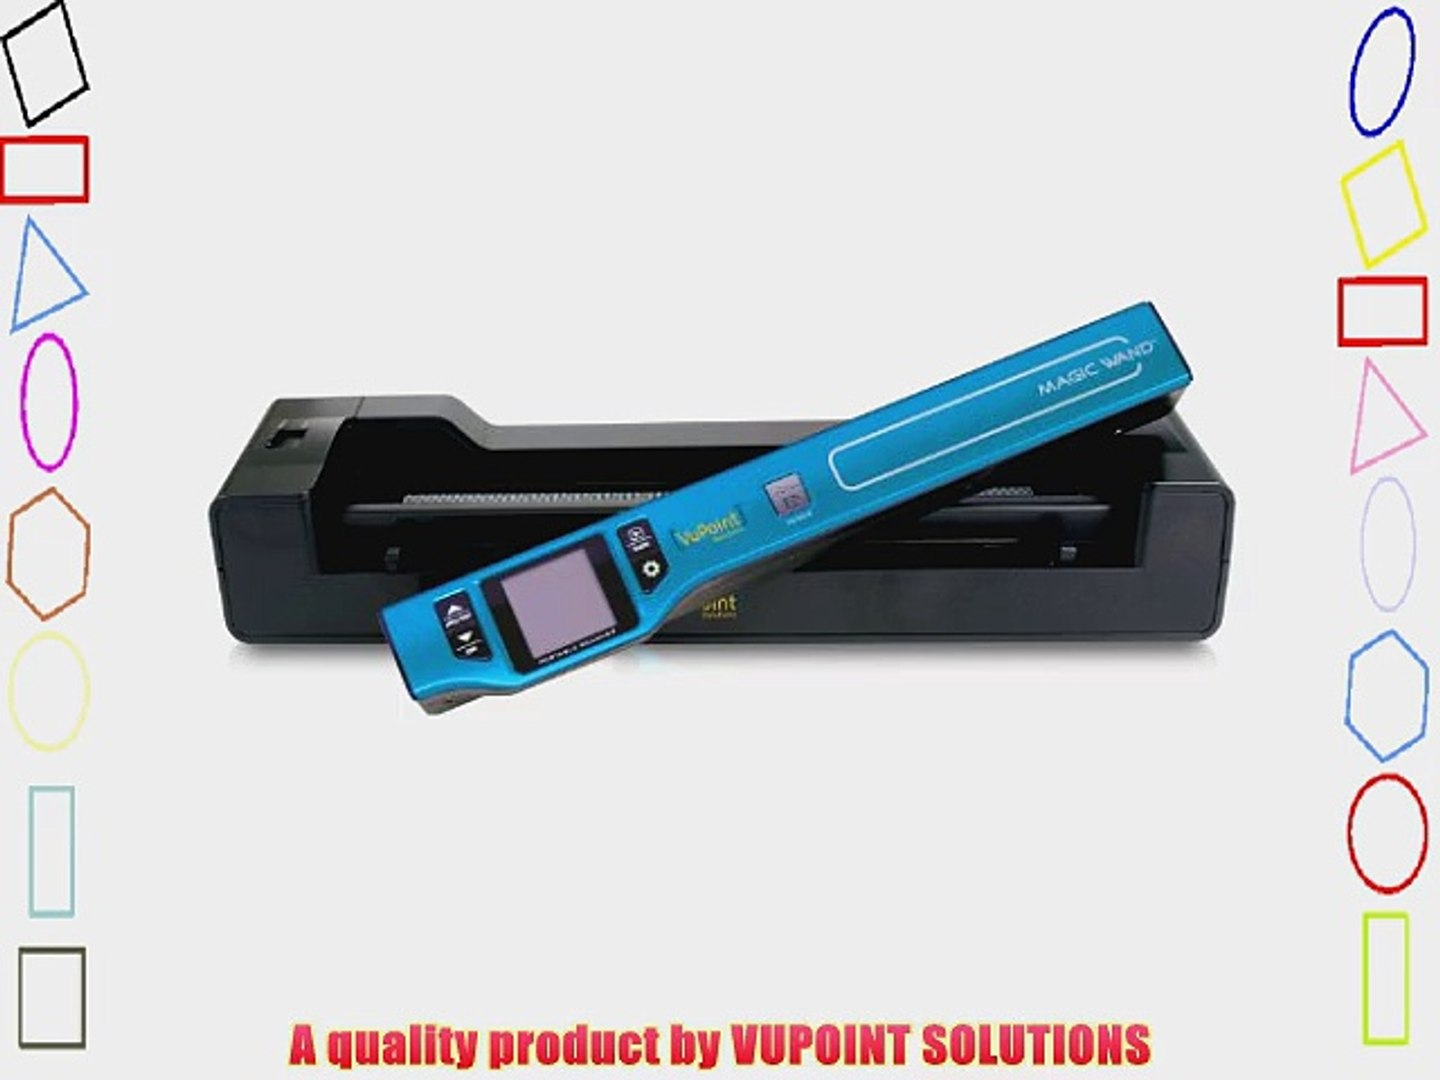 Vupoint Portable Scanner with Color Display /& Auto-Feed Dock PDSDK-ST470 Blue